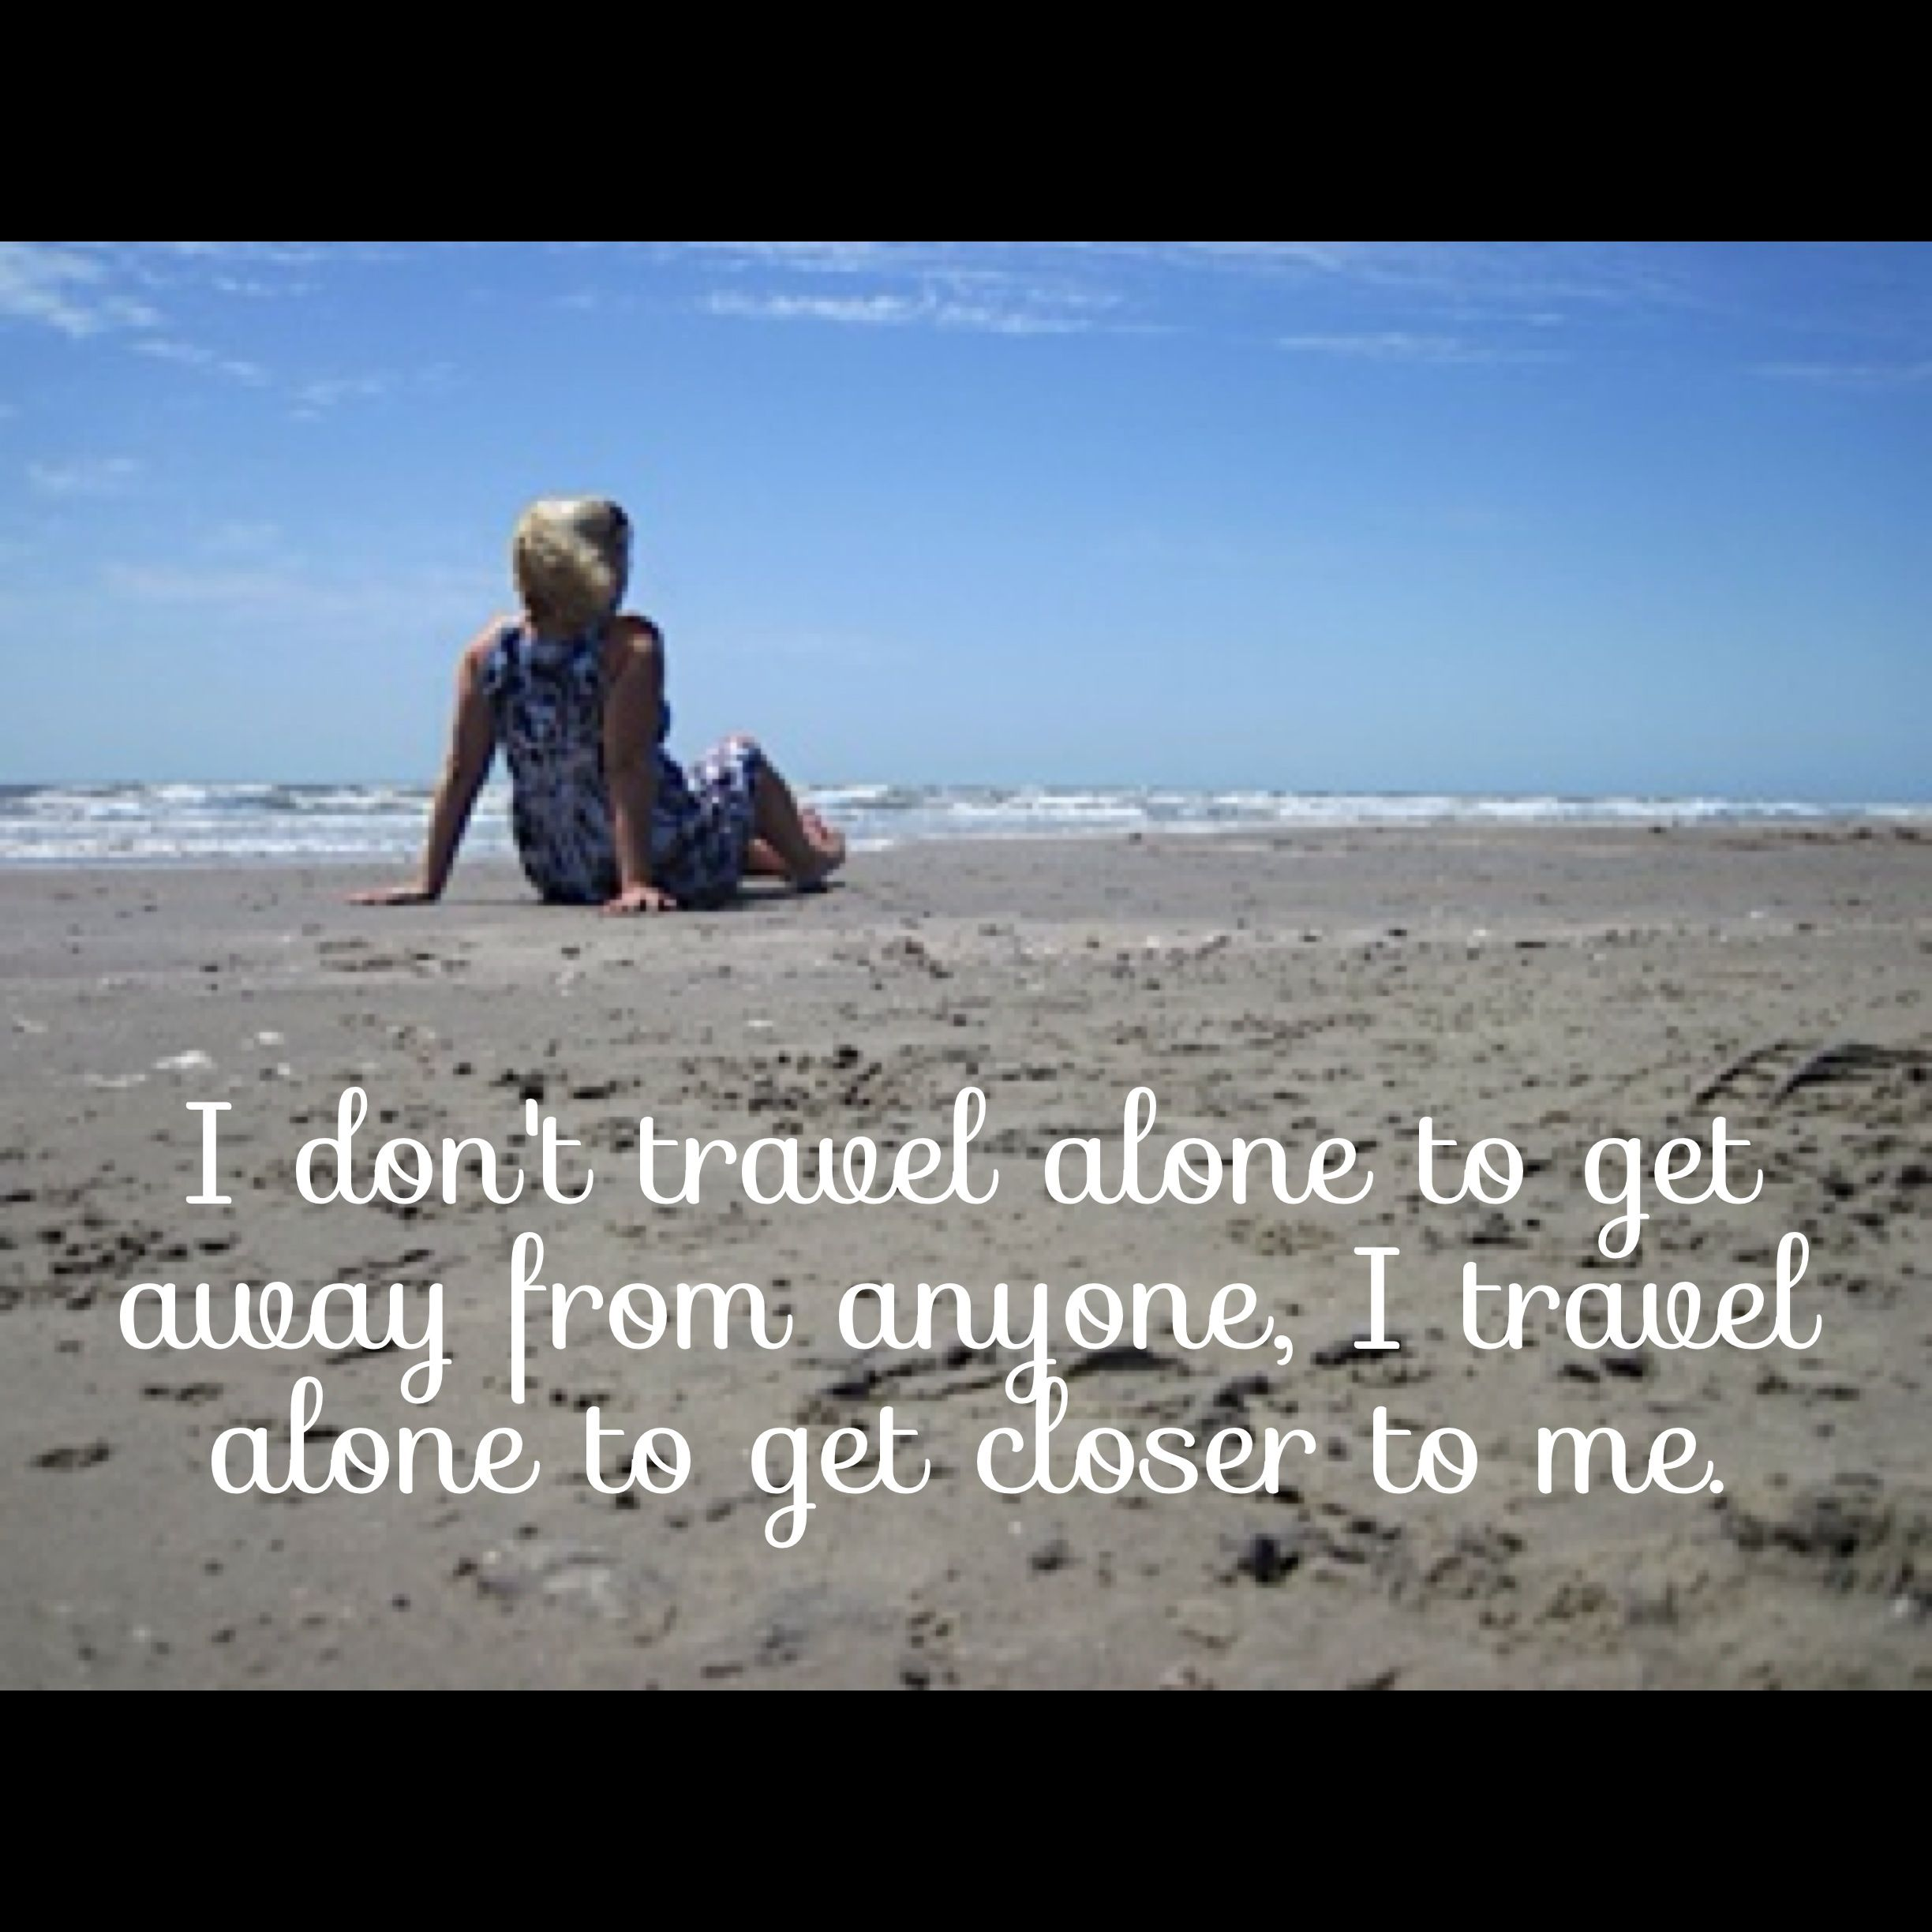 Travel Alone Quotes Inspiration Self Photo With My Words To Describe Why I Love To Travel Solo